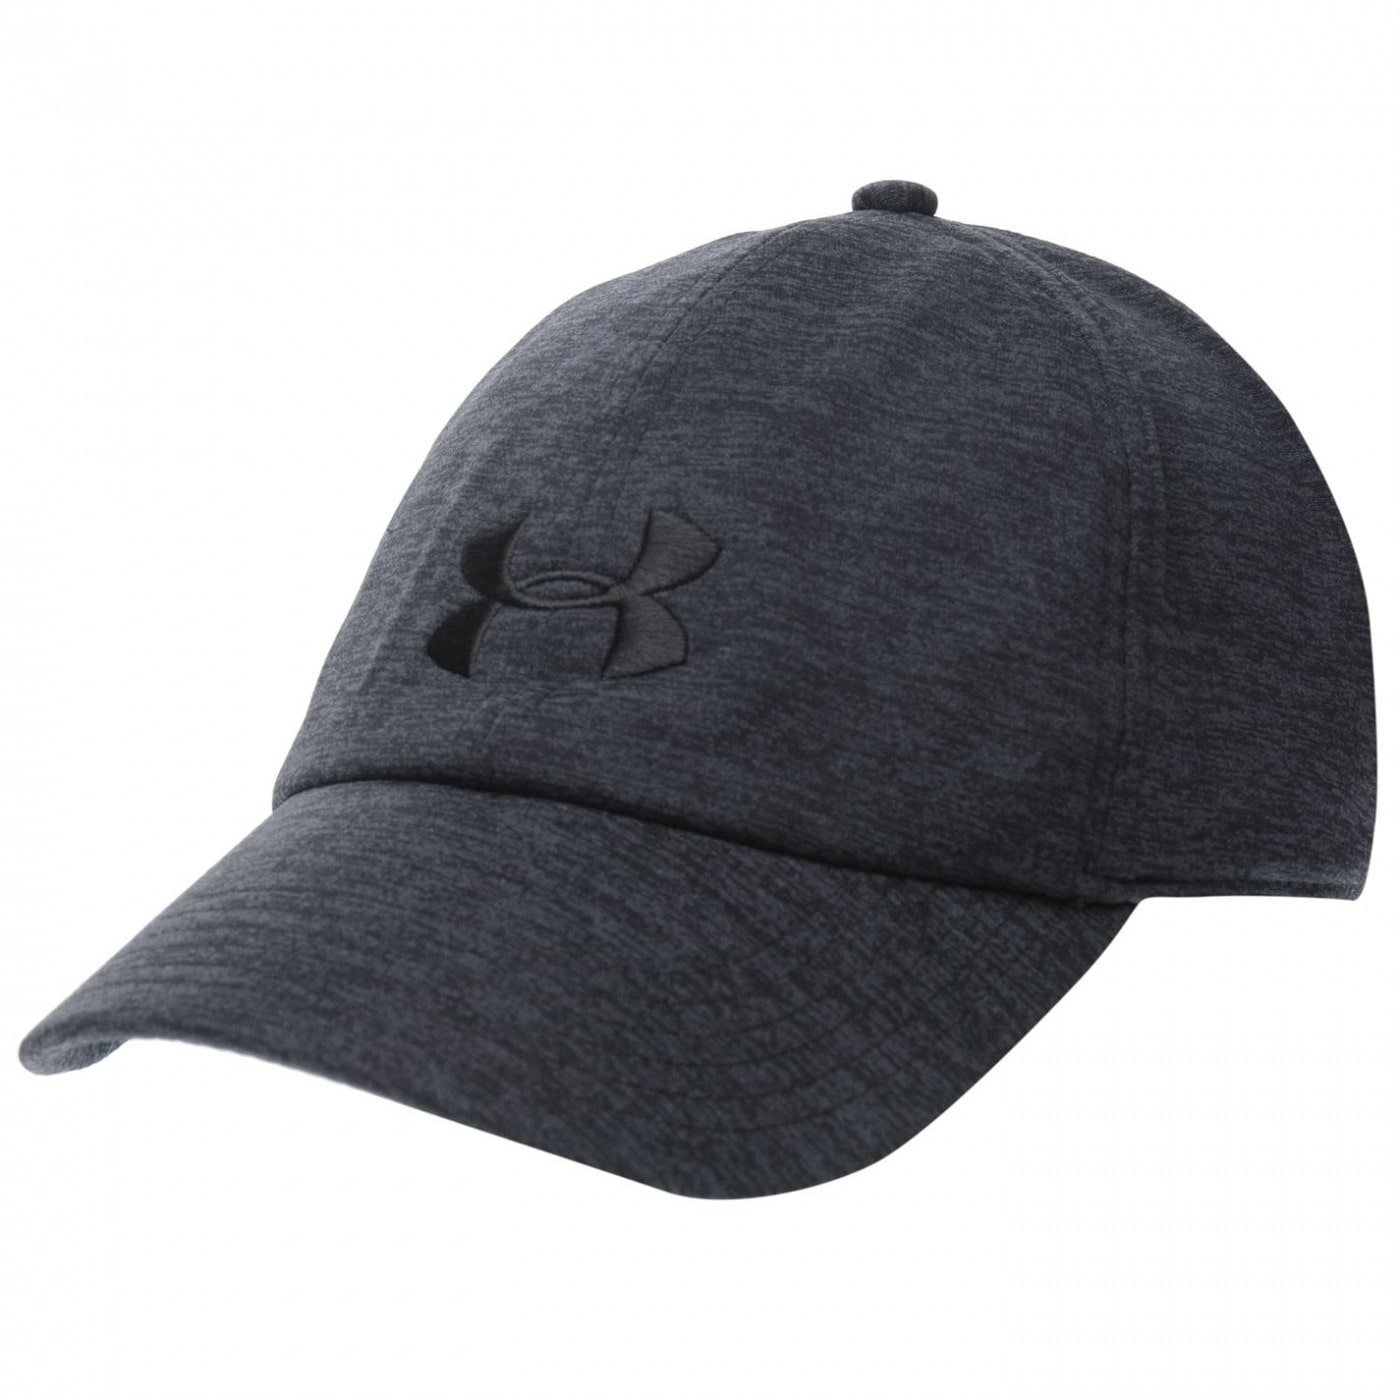 Under Armour Renegade Twist Cap Ladies